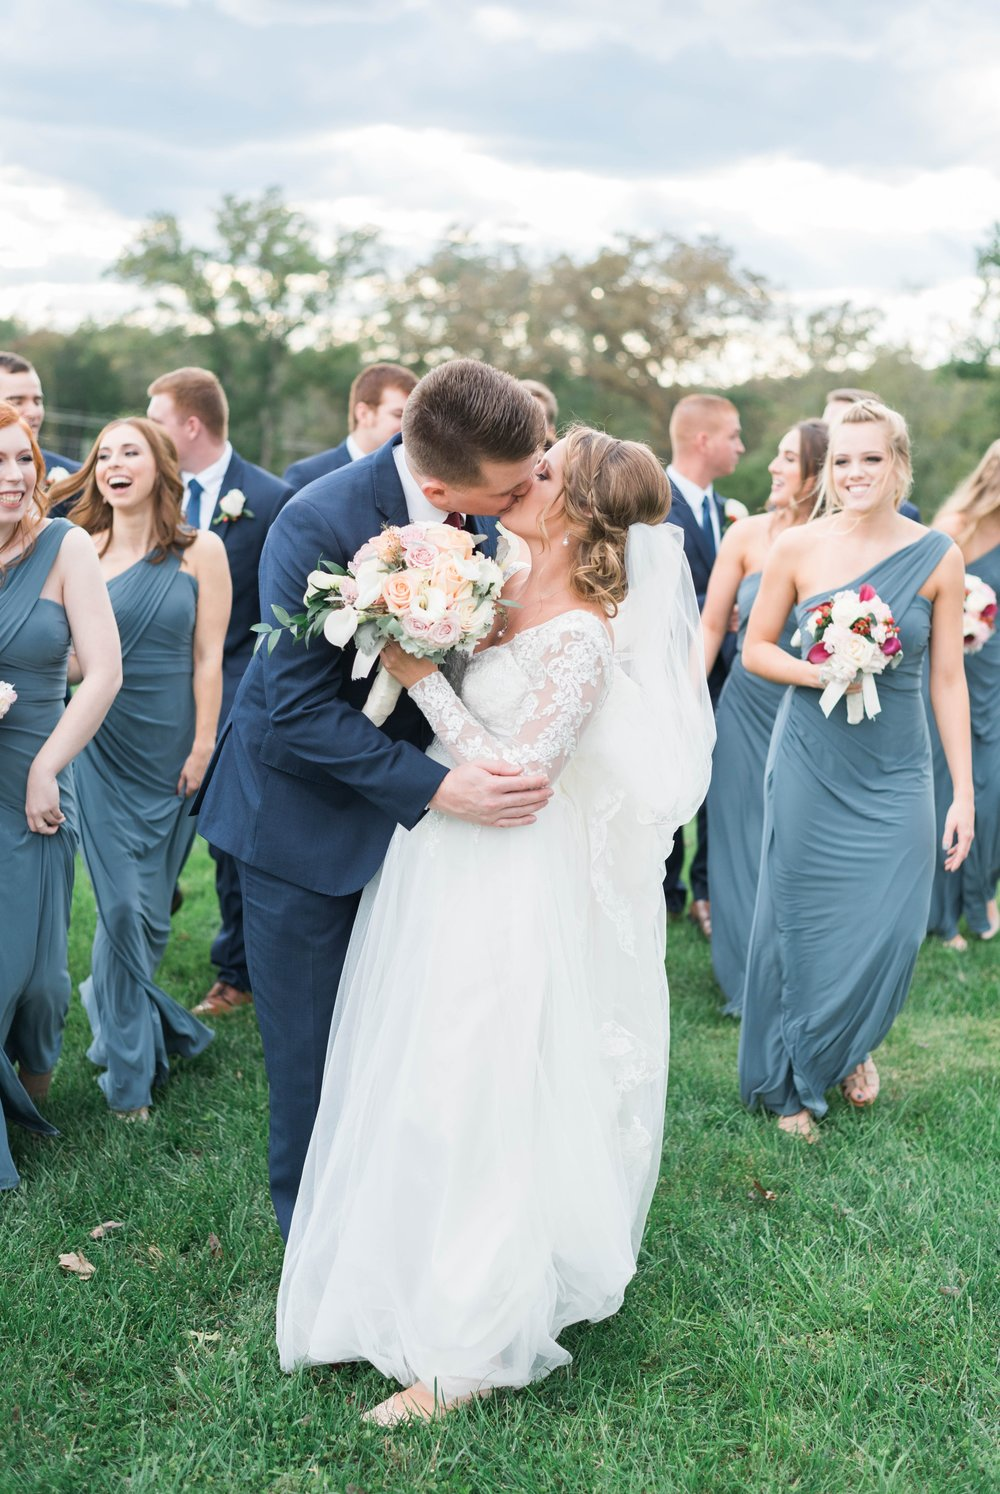 GrantElizabeth_wineryatbullrun_DCwedding_Virginiaweddingphotographer 41.jpg